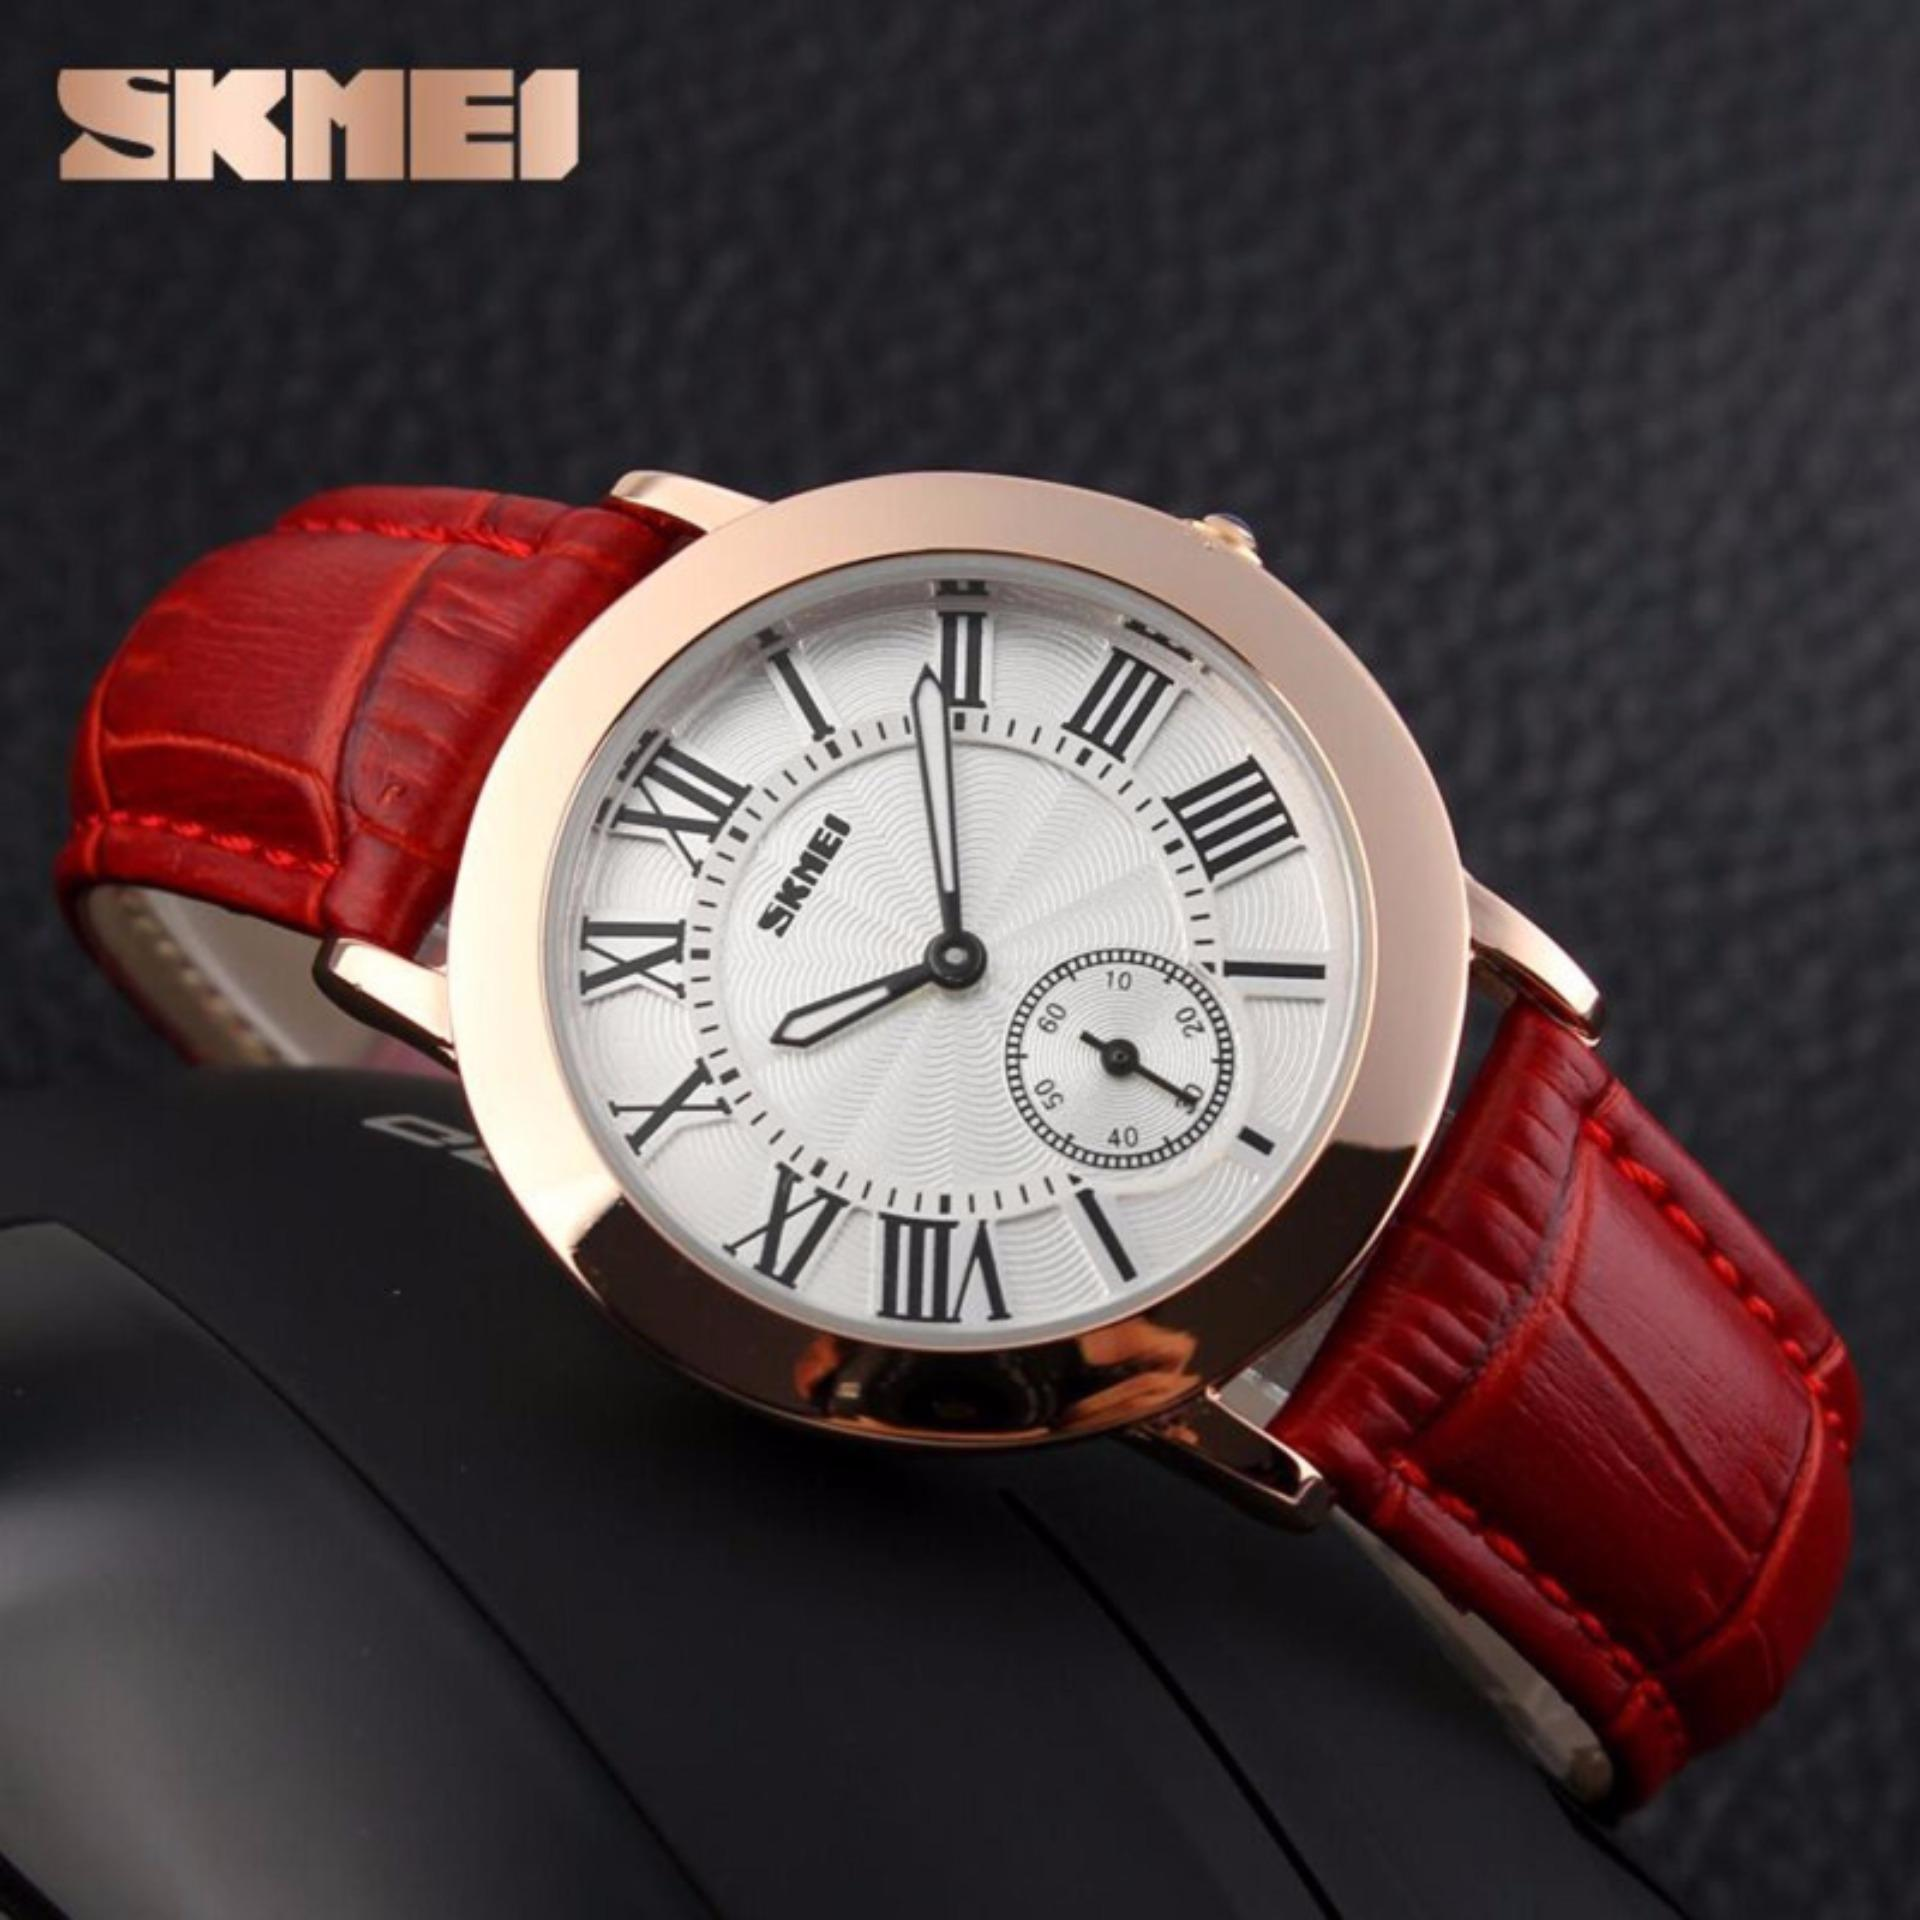 SKMEI Jam Tangan Wanita Fashion Watch Water Resistant Anti Air WR 30m  Casual Ladies Leather Strap 7b964b788a